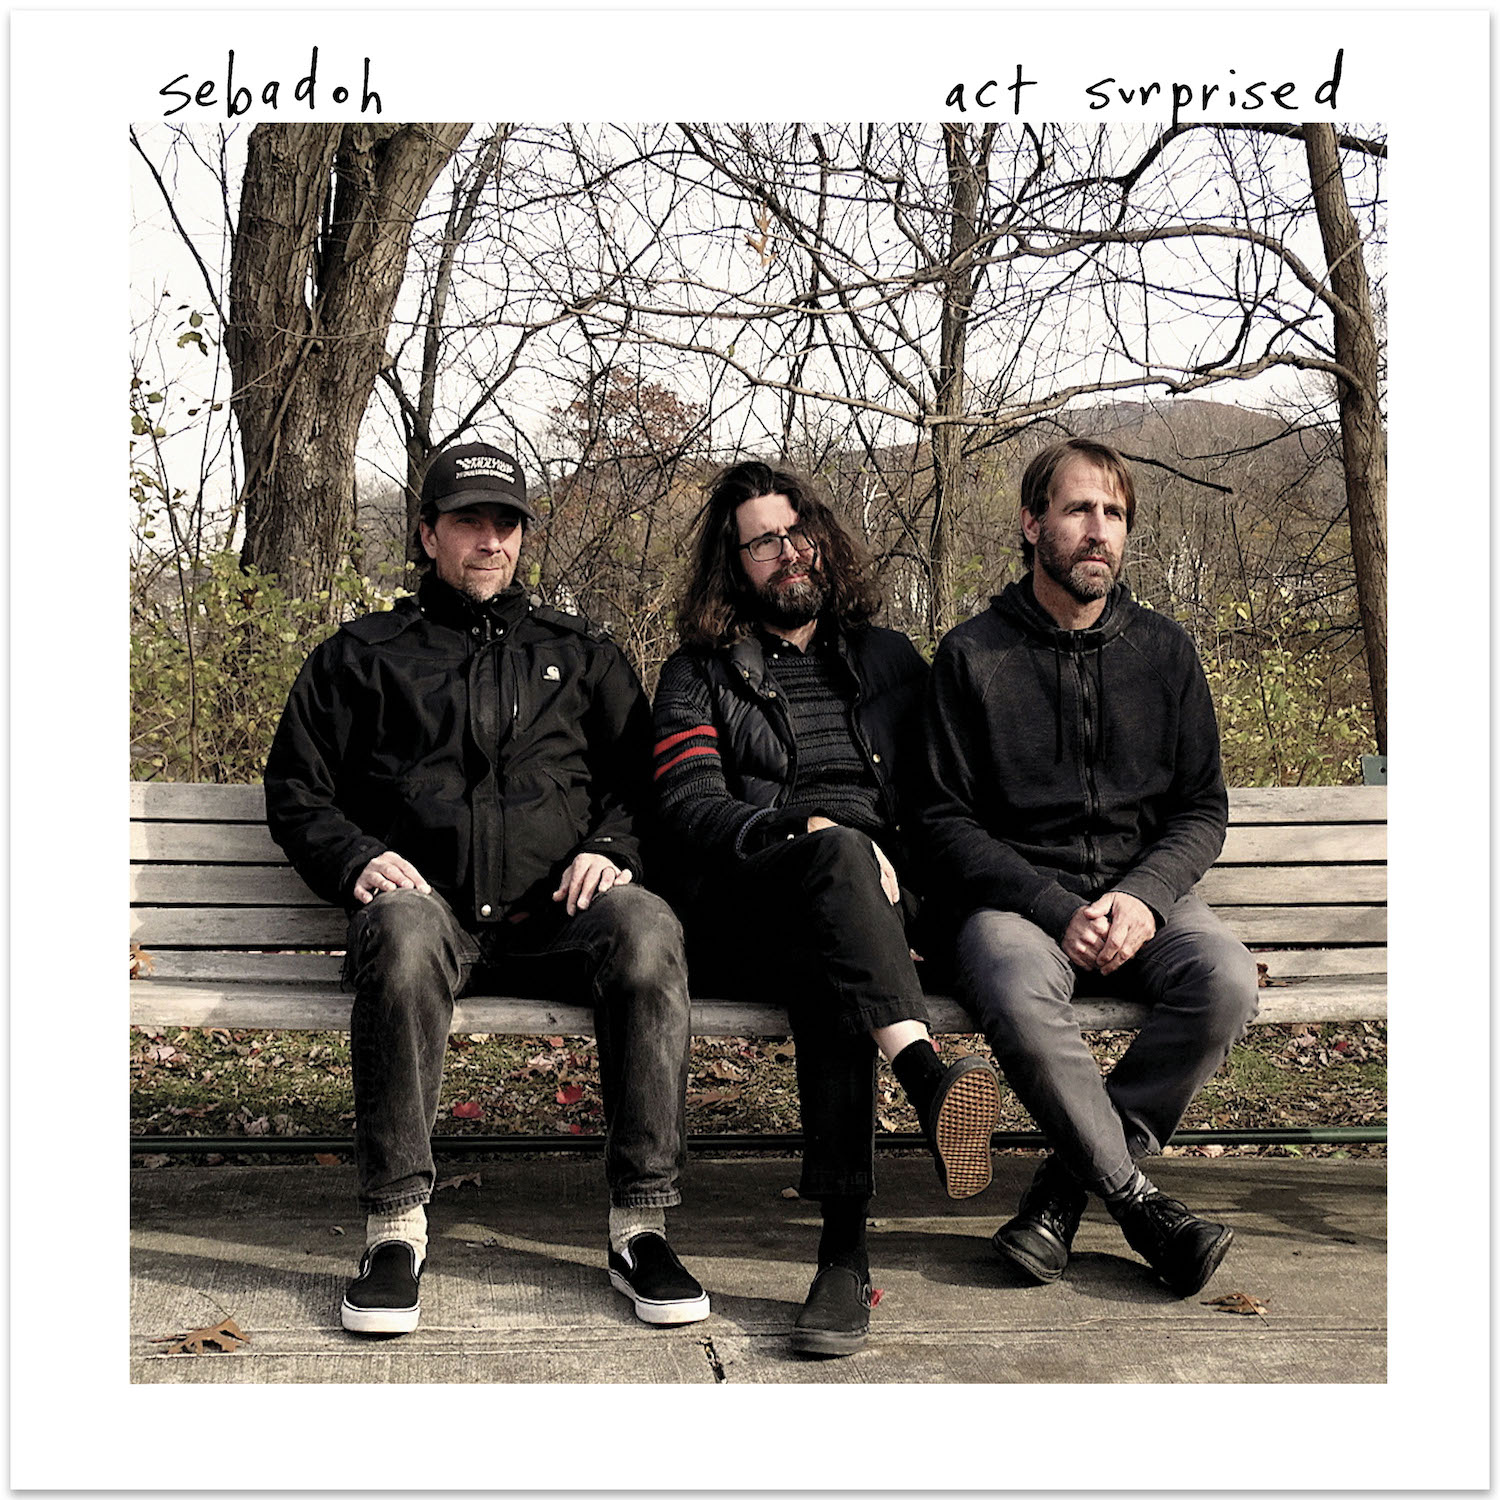 Sebadoh Announce First Album In Six Years Act Surprised